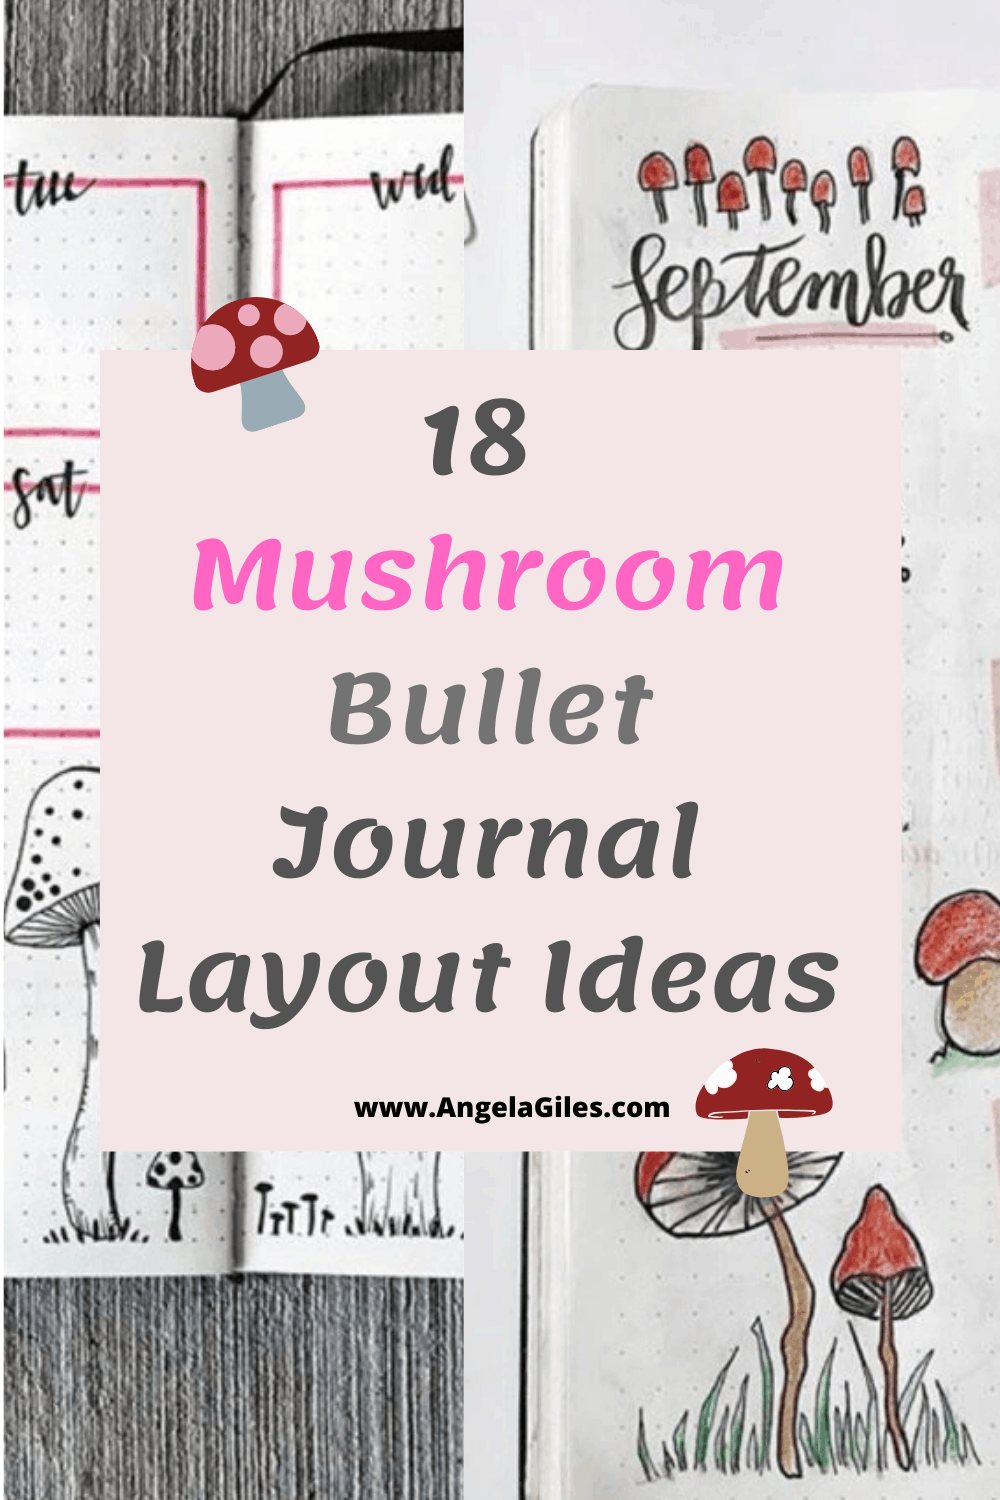 18 Best Mushroom Bullet Journal Layout Ideas for 2020 Mushrooms are fun bullet journal themes for the bujo addict who wants inspiration.  We share bullet journal ideas, mushroom bullet journal layouts, mushroom bullet journal spreads, mushroom bullet journal page ideas and even fun facts about mushrooms. #mushroombulletjournal #mushroombulletjournaltheme #mushroombulletjournalcover #mushroombulletjournalspread #mushroombulletjournalweekly #mushroombulletjournalhabittracker